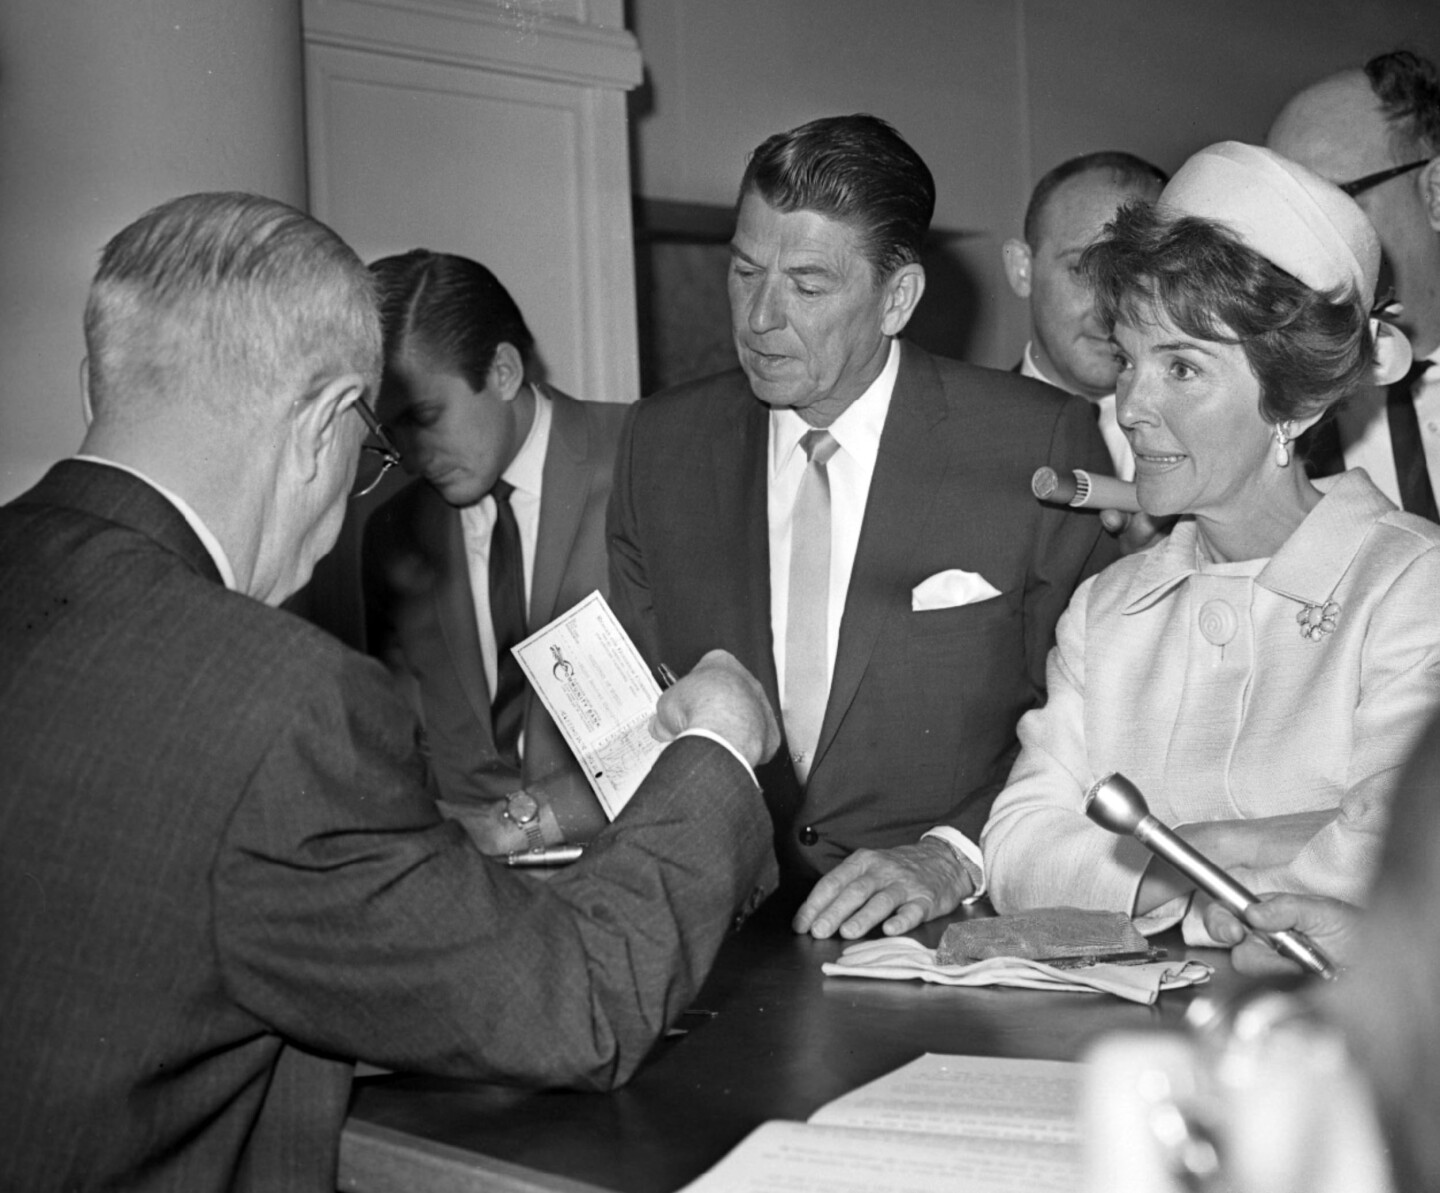 Ronald Reagan with his wife Nancy, filing the papers to run for governor in 1966.